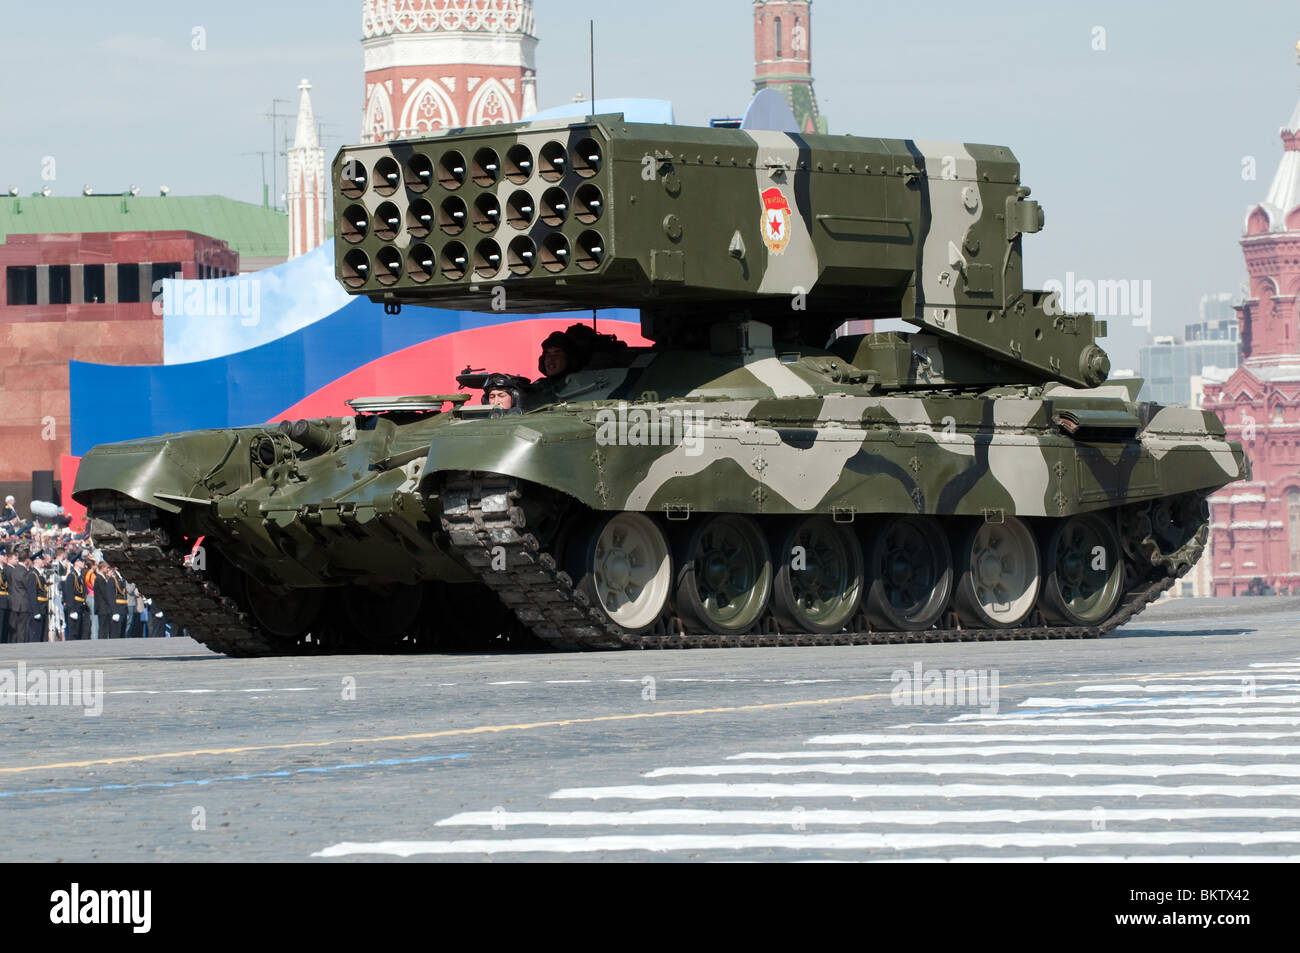 Heavy Flame Thrower System TOS-1, rocket launcher and thermobaric weapon, march along the Red Square Moscow Victory - Stock Image